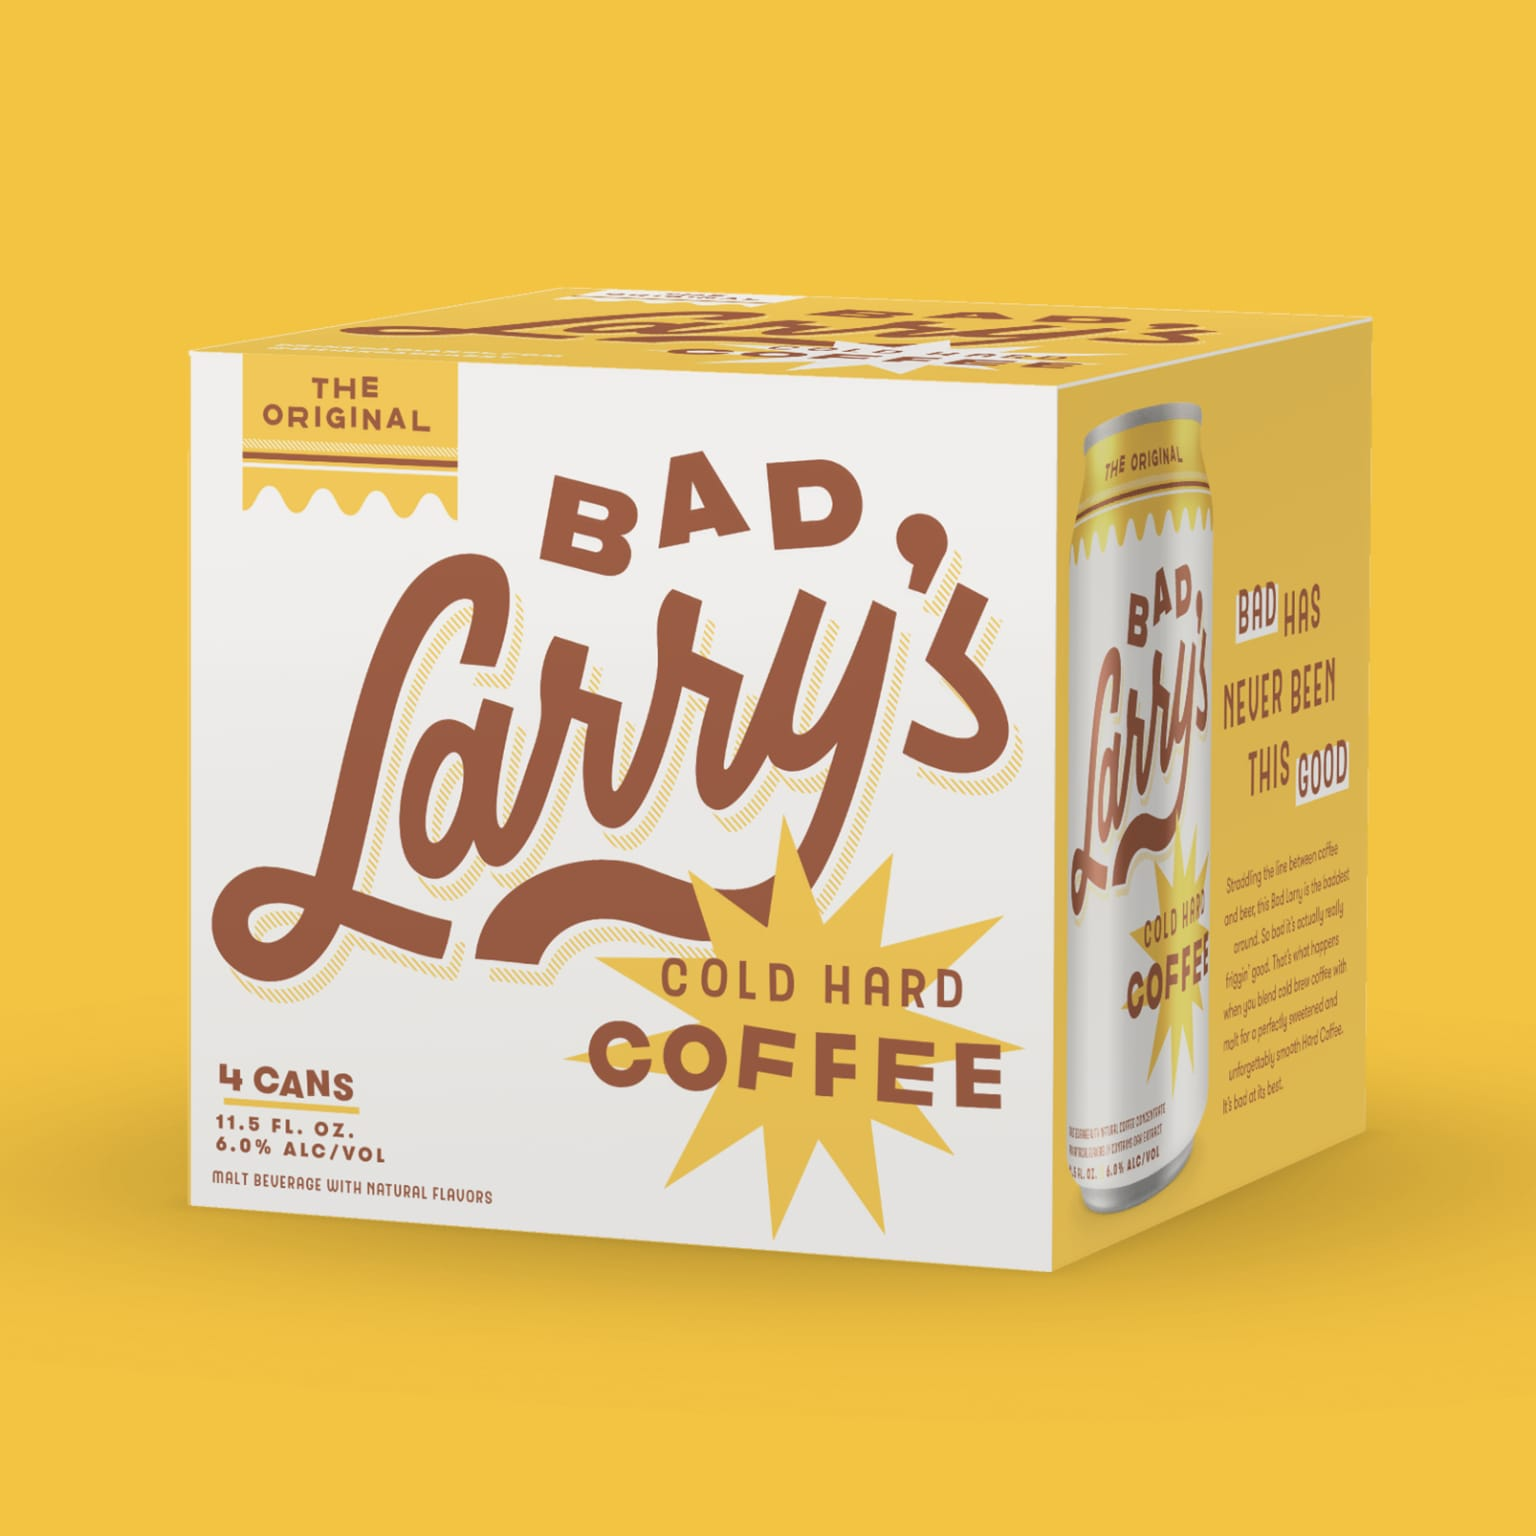 Bad Larry's Identity and Packaging